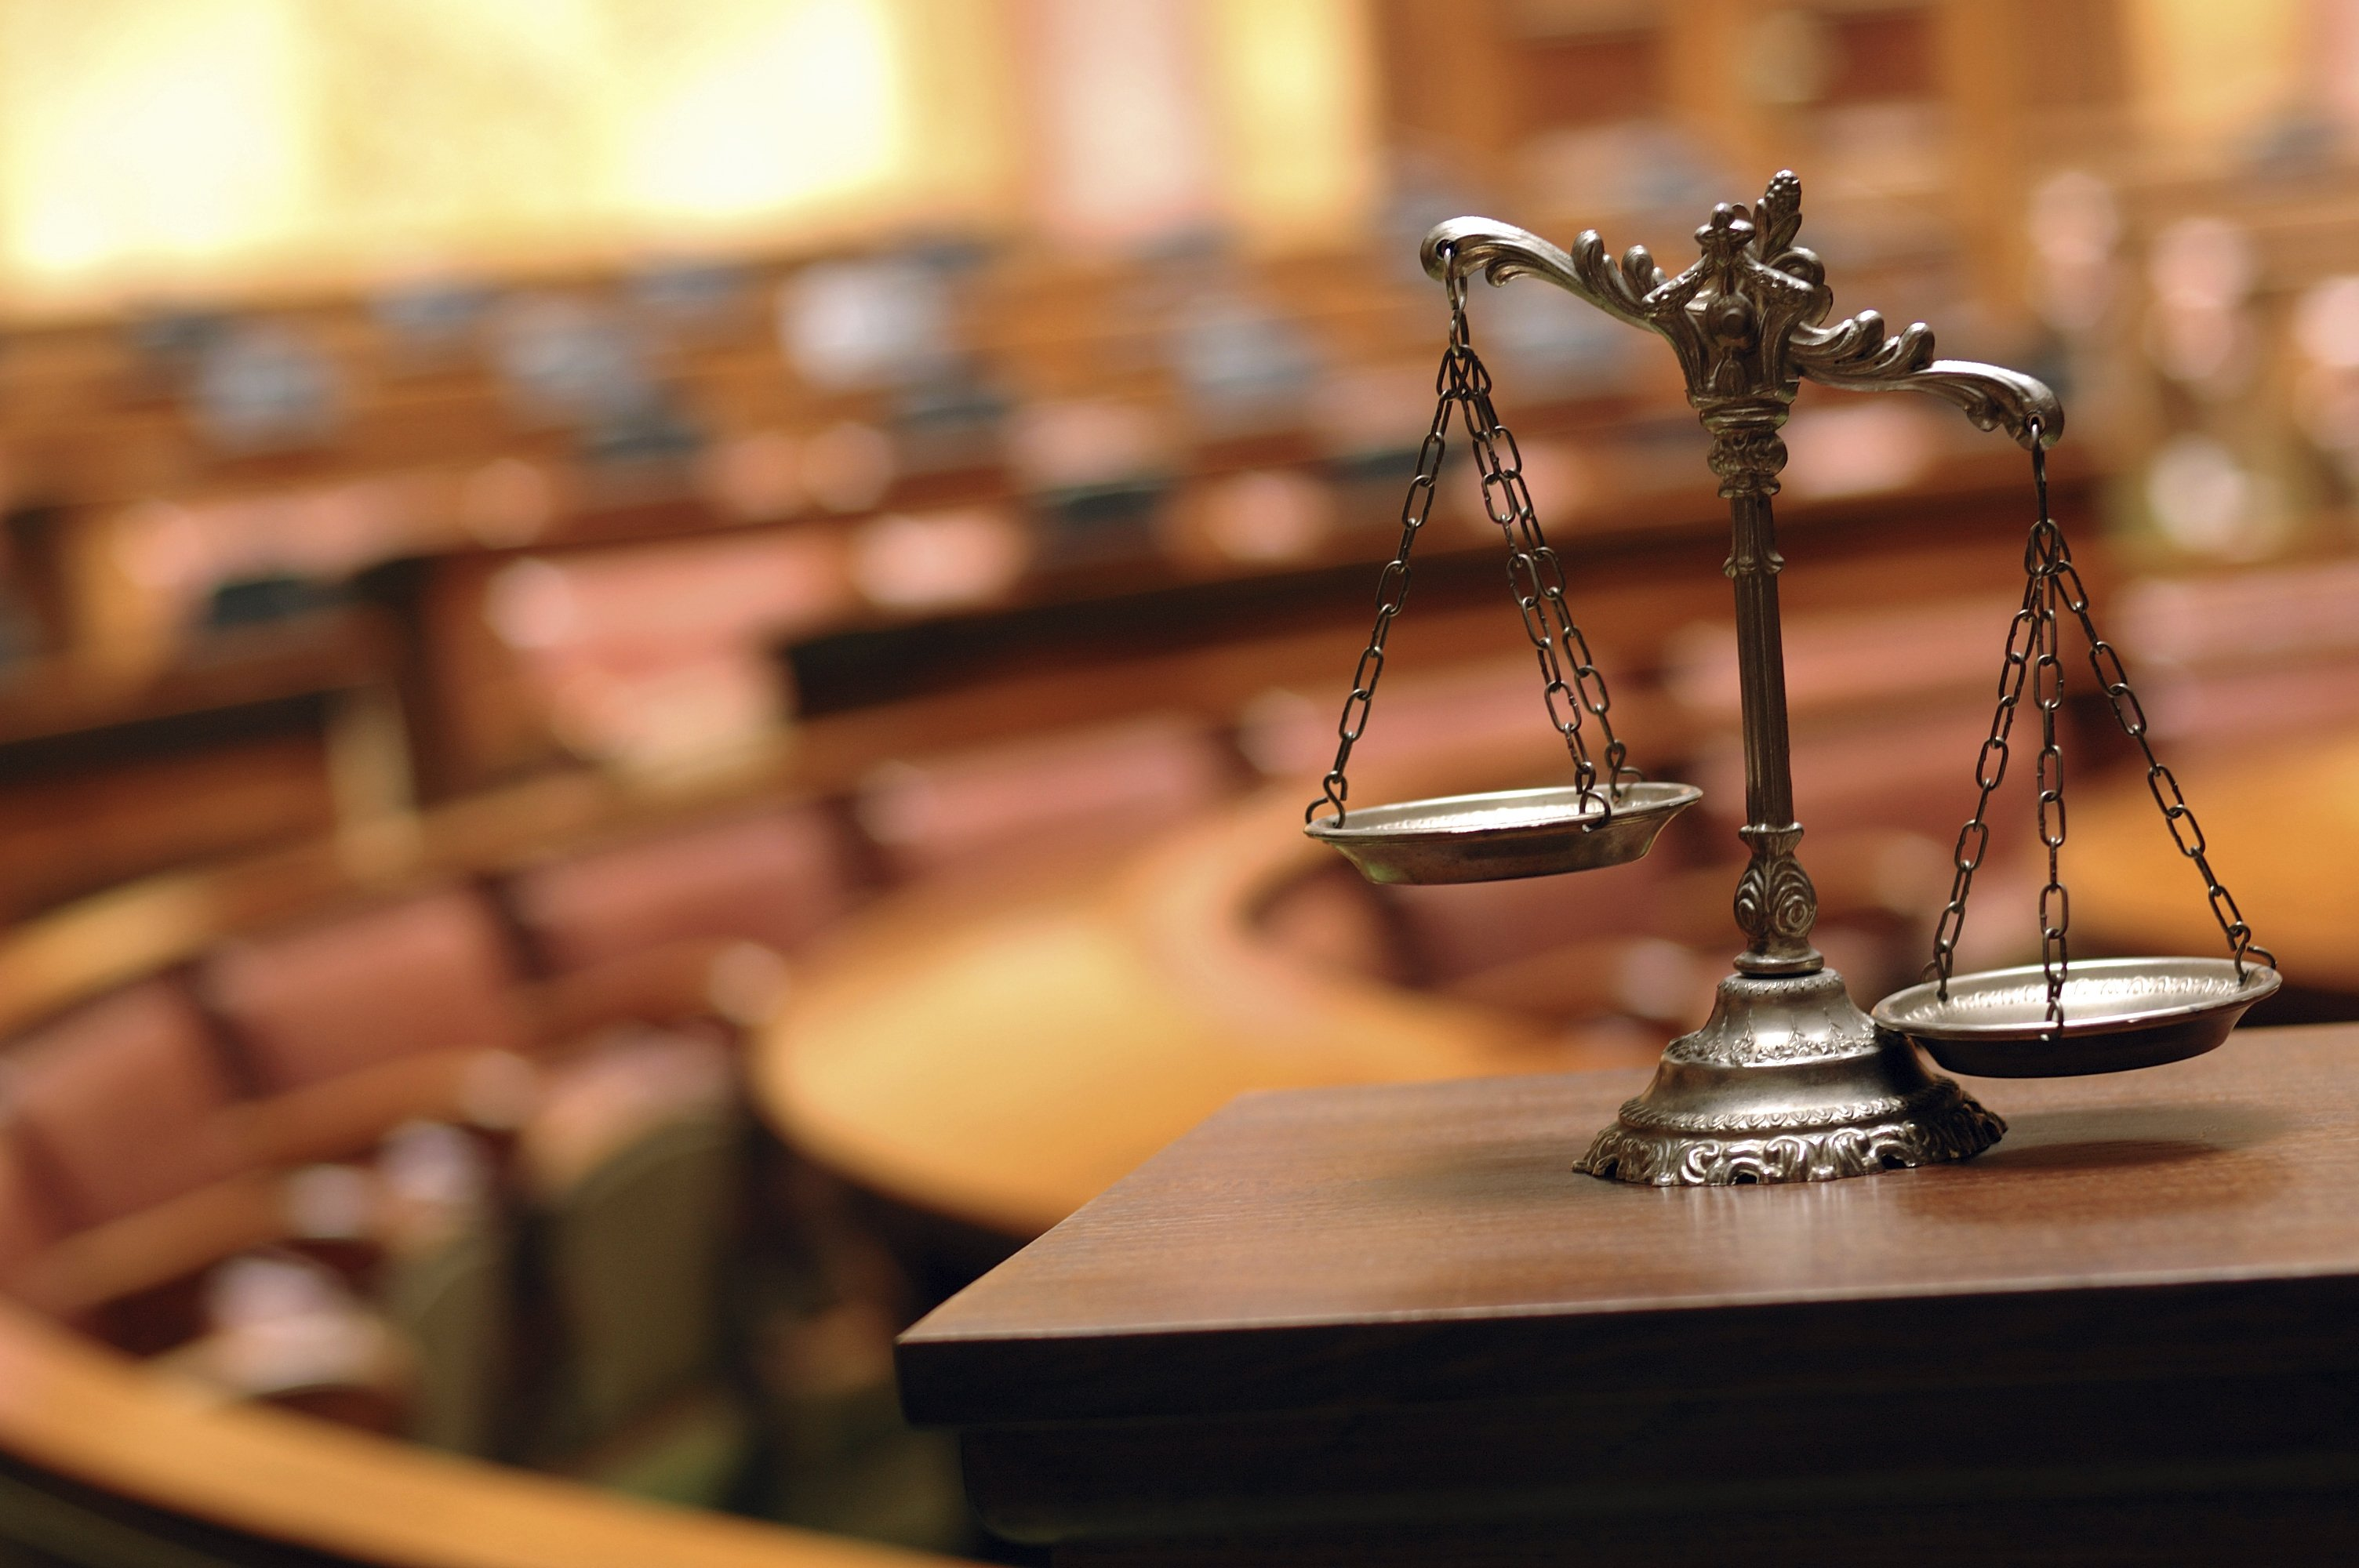 Decorative Scales Of Justice In The Courtroom Armstrong Law Group